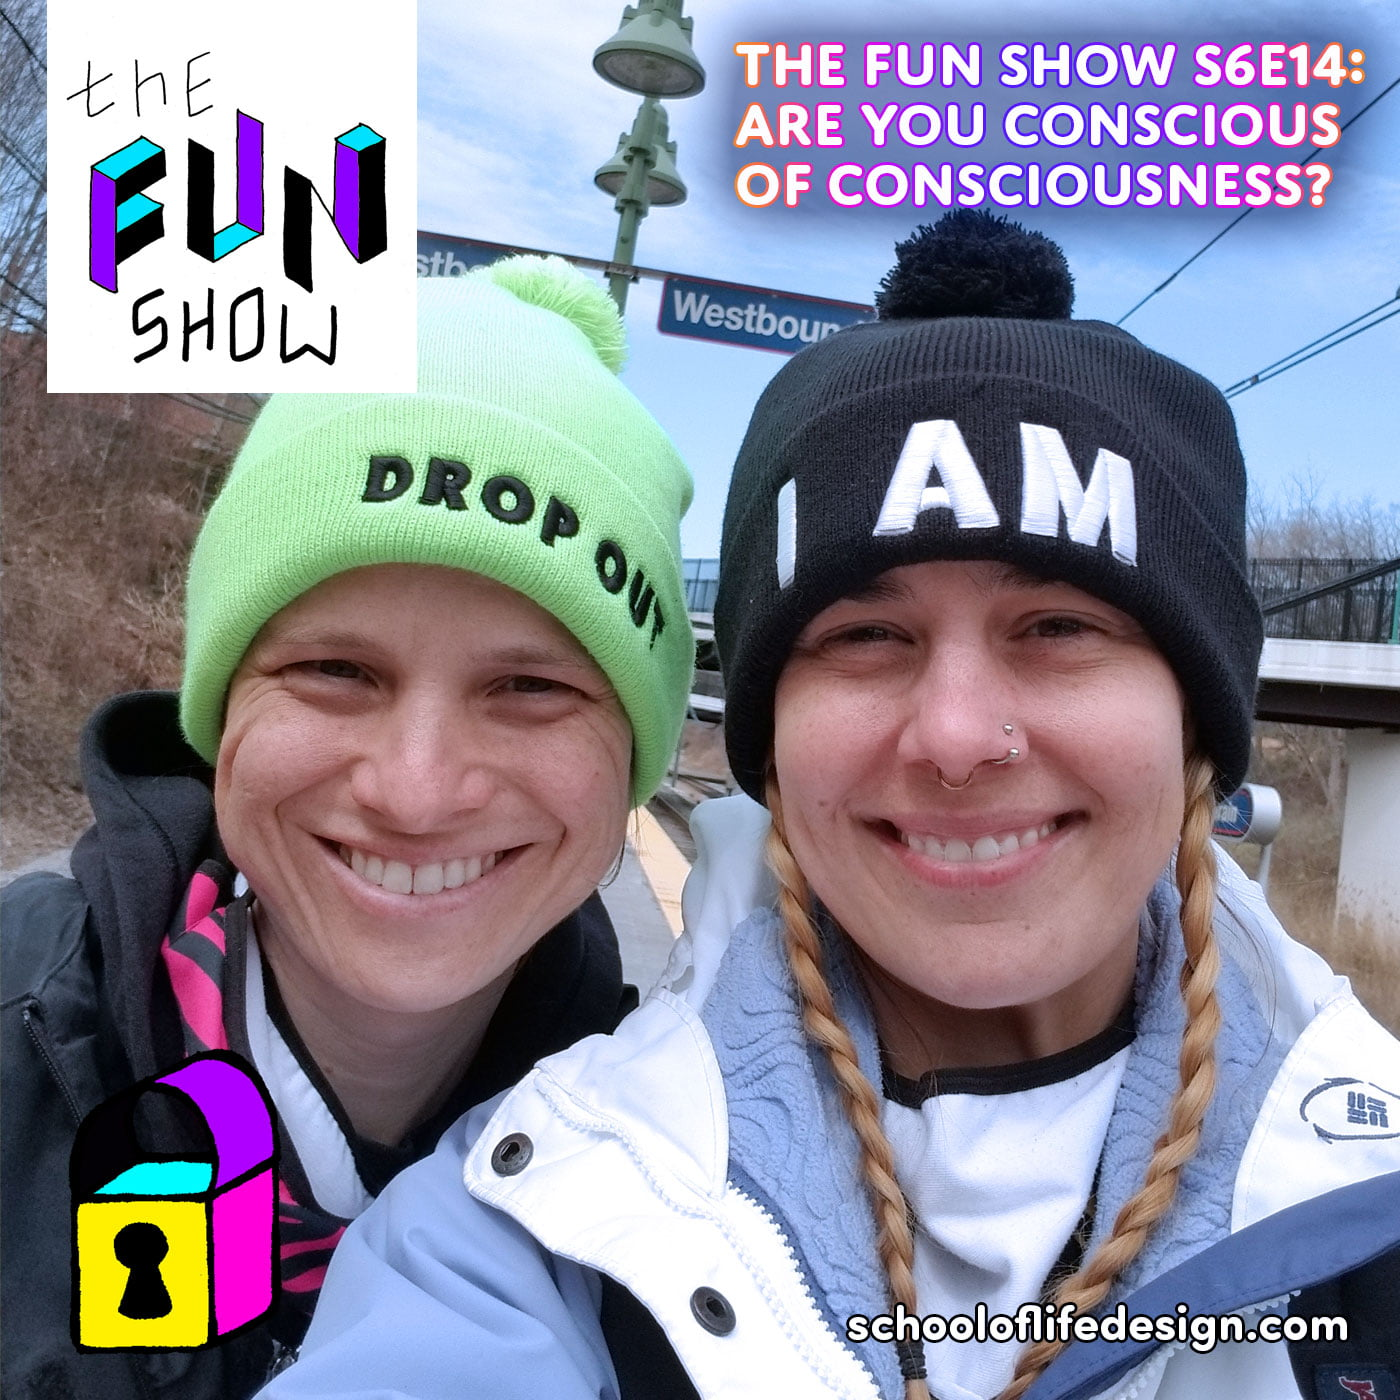 The Fun Show S6E14: Are You Conscious of Consciousness?